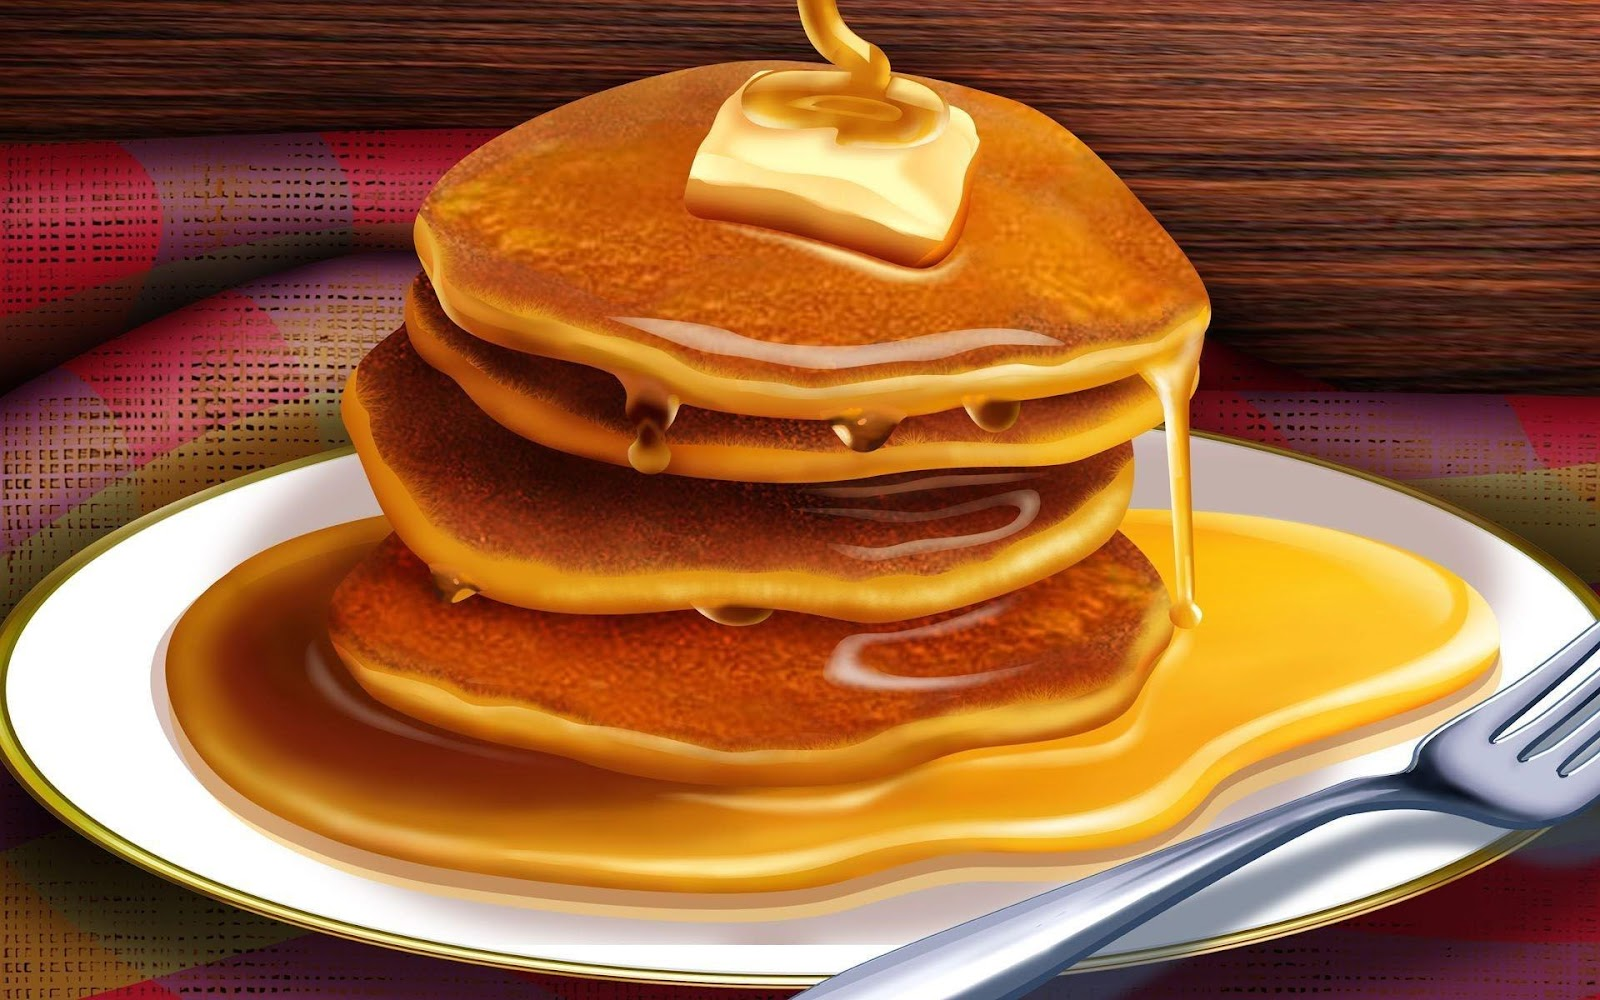 C:\Users\rwil313\Desktop\Pancakes and maple syrup (updated).jpg